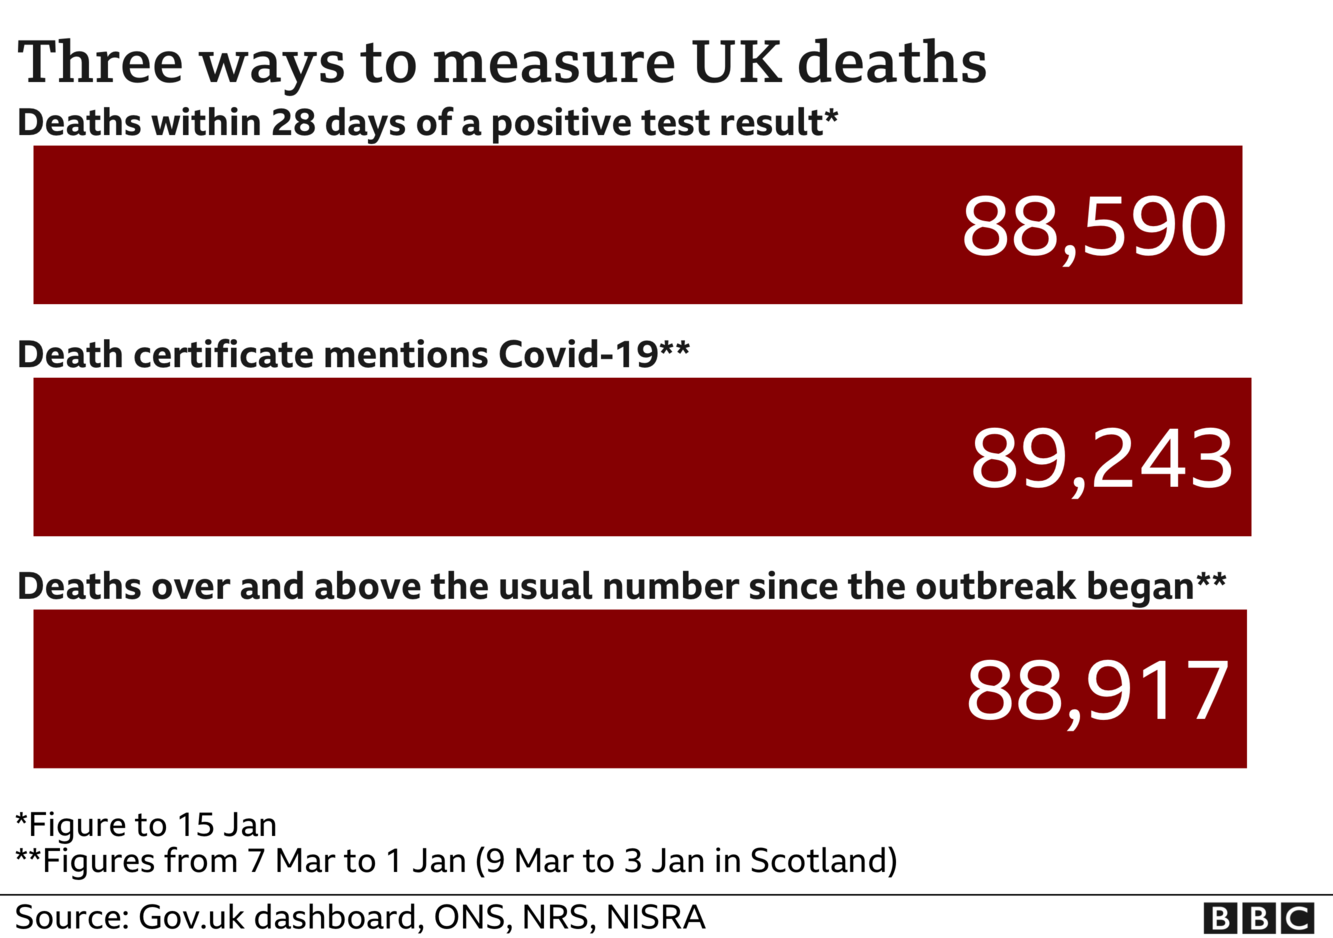 Chart showing three different totals for coronavirus deaths - the government measures all deaths within 28 days of a positive test, that total is 88,590. The ONS includes all deaths where coronavirus was mentioned on the death certificate, that total is 89,243 and the final total includes all deaths over and above the average for the time of year and that total is now 88,917